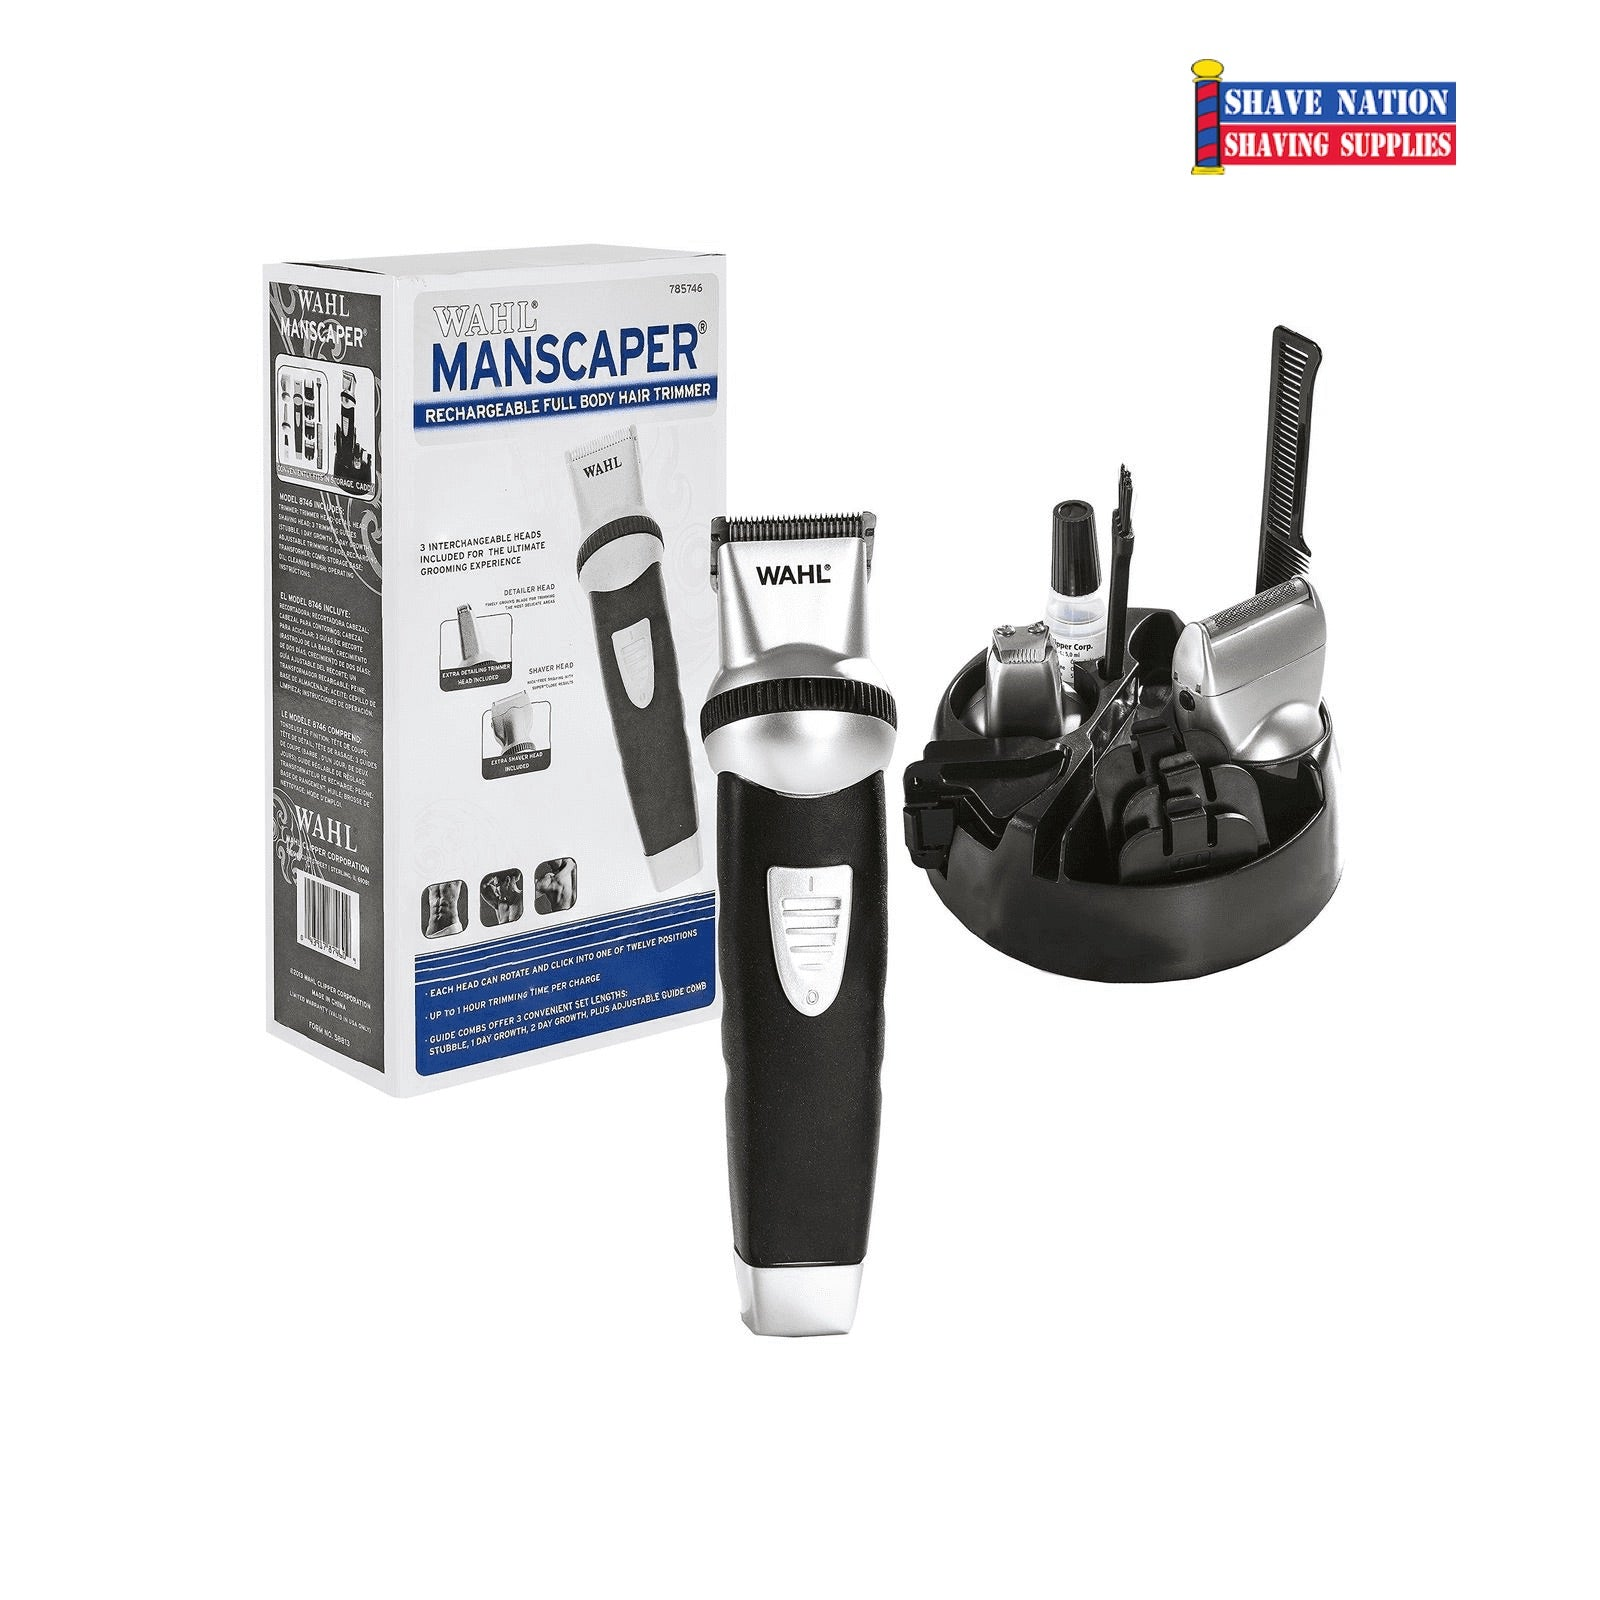 Wahl Manscaper Full Body Trimmer